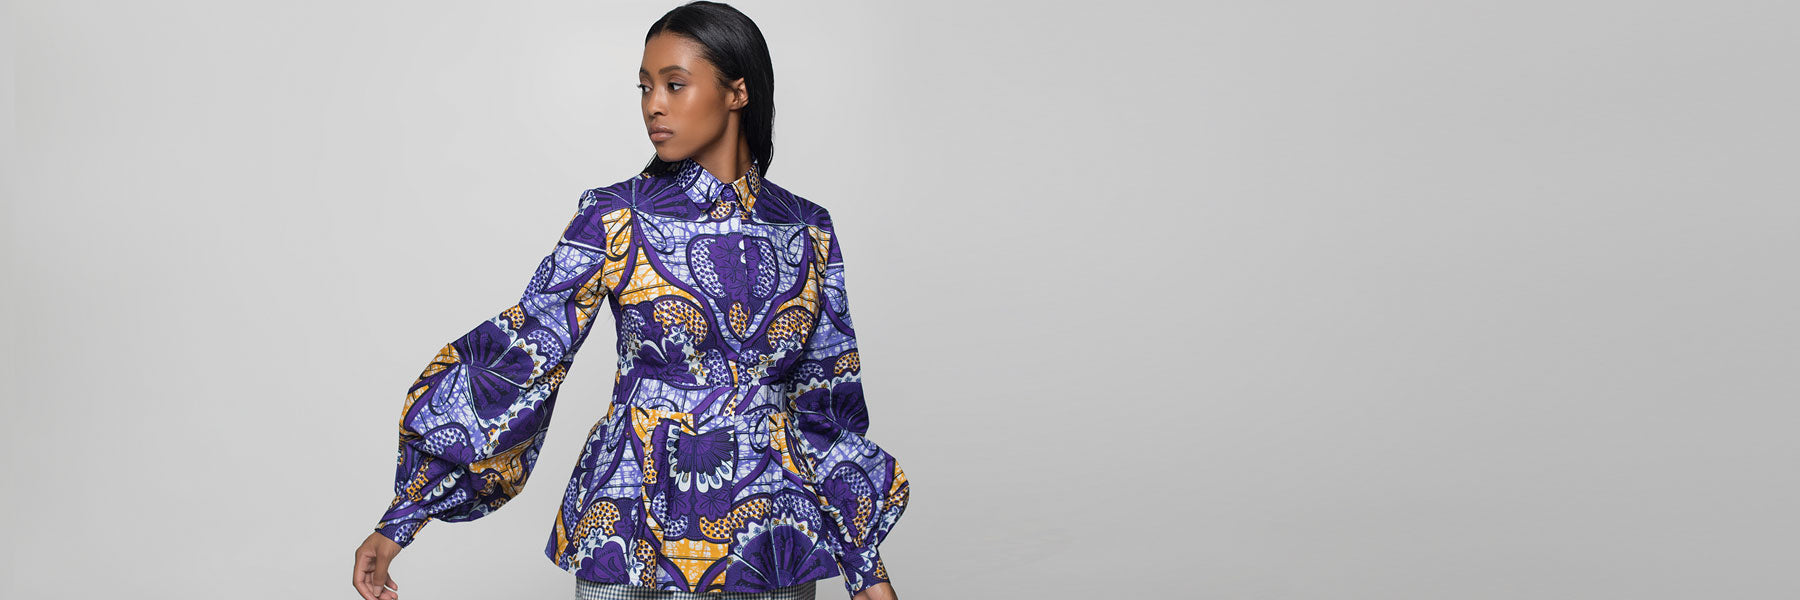 Best Selection Of African Print Dresses